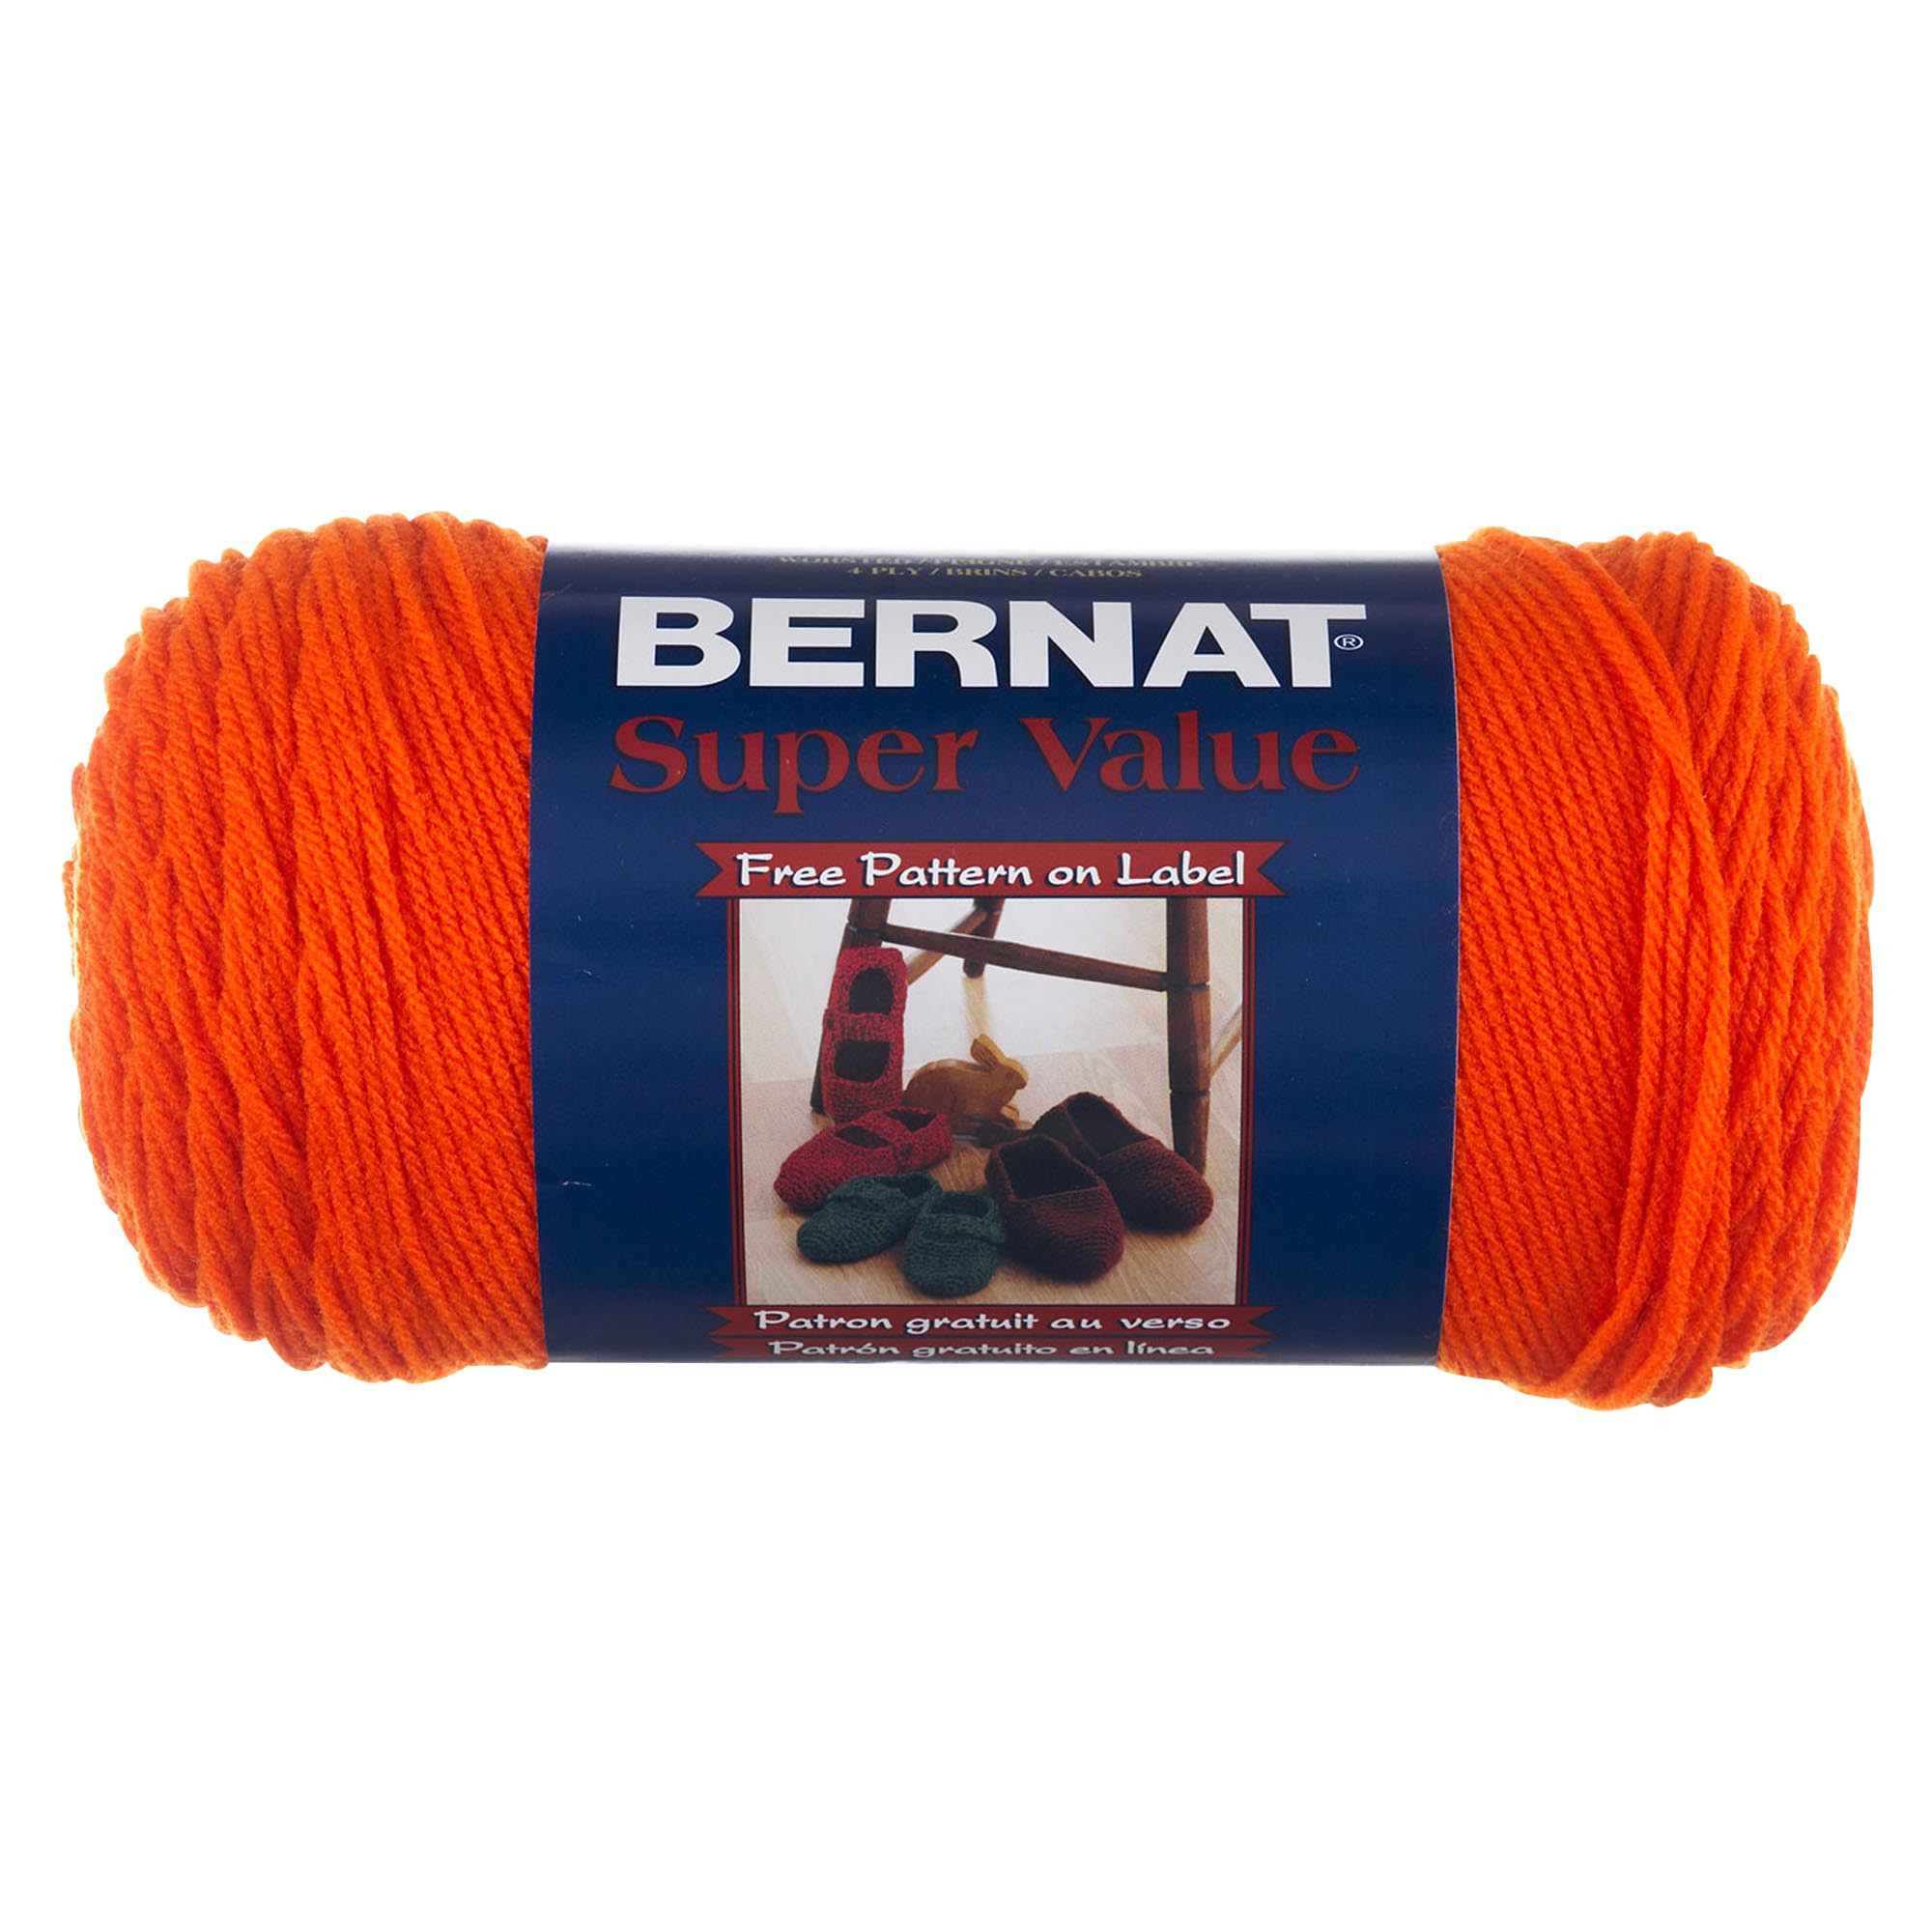 Bernat Super Value Elegant Bernat Super Value Knitting Yarn 197g 142g Of Beautiful 46 Pics Bernat Super Value